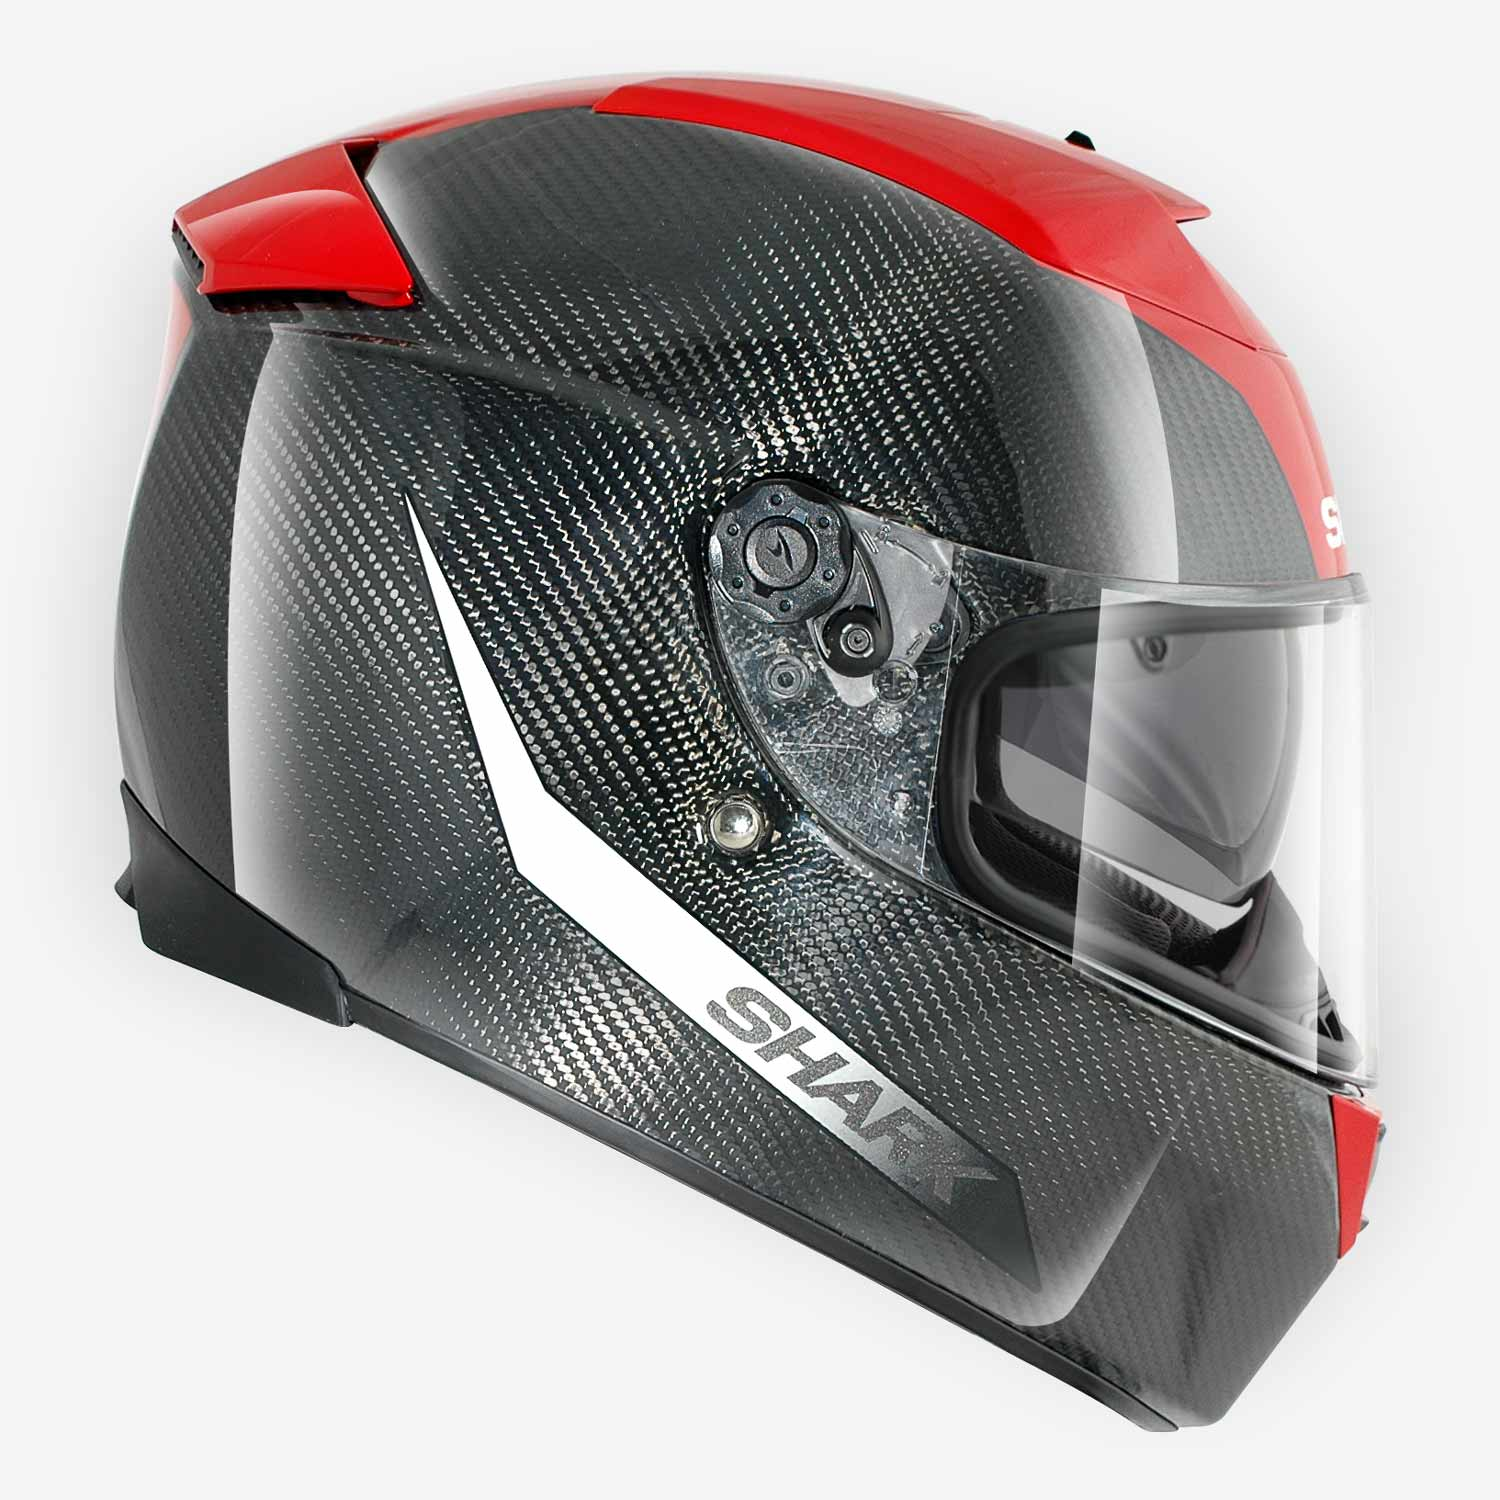 casque moto speed r2 carbon shark noir rouge. Black Bedroom Furniture Sets. Home Design Ideas